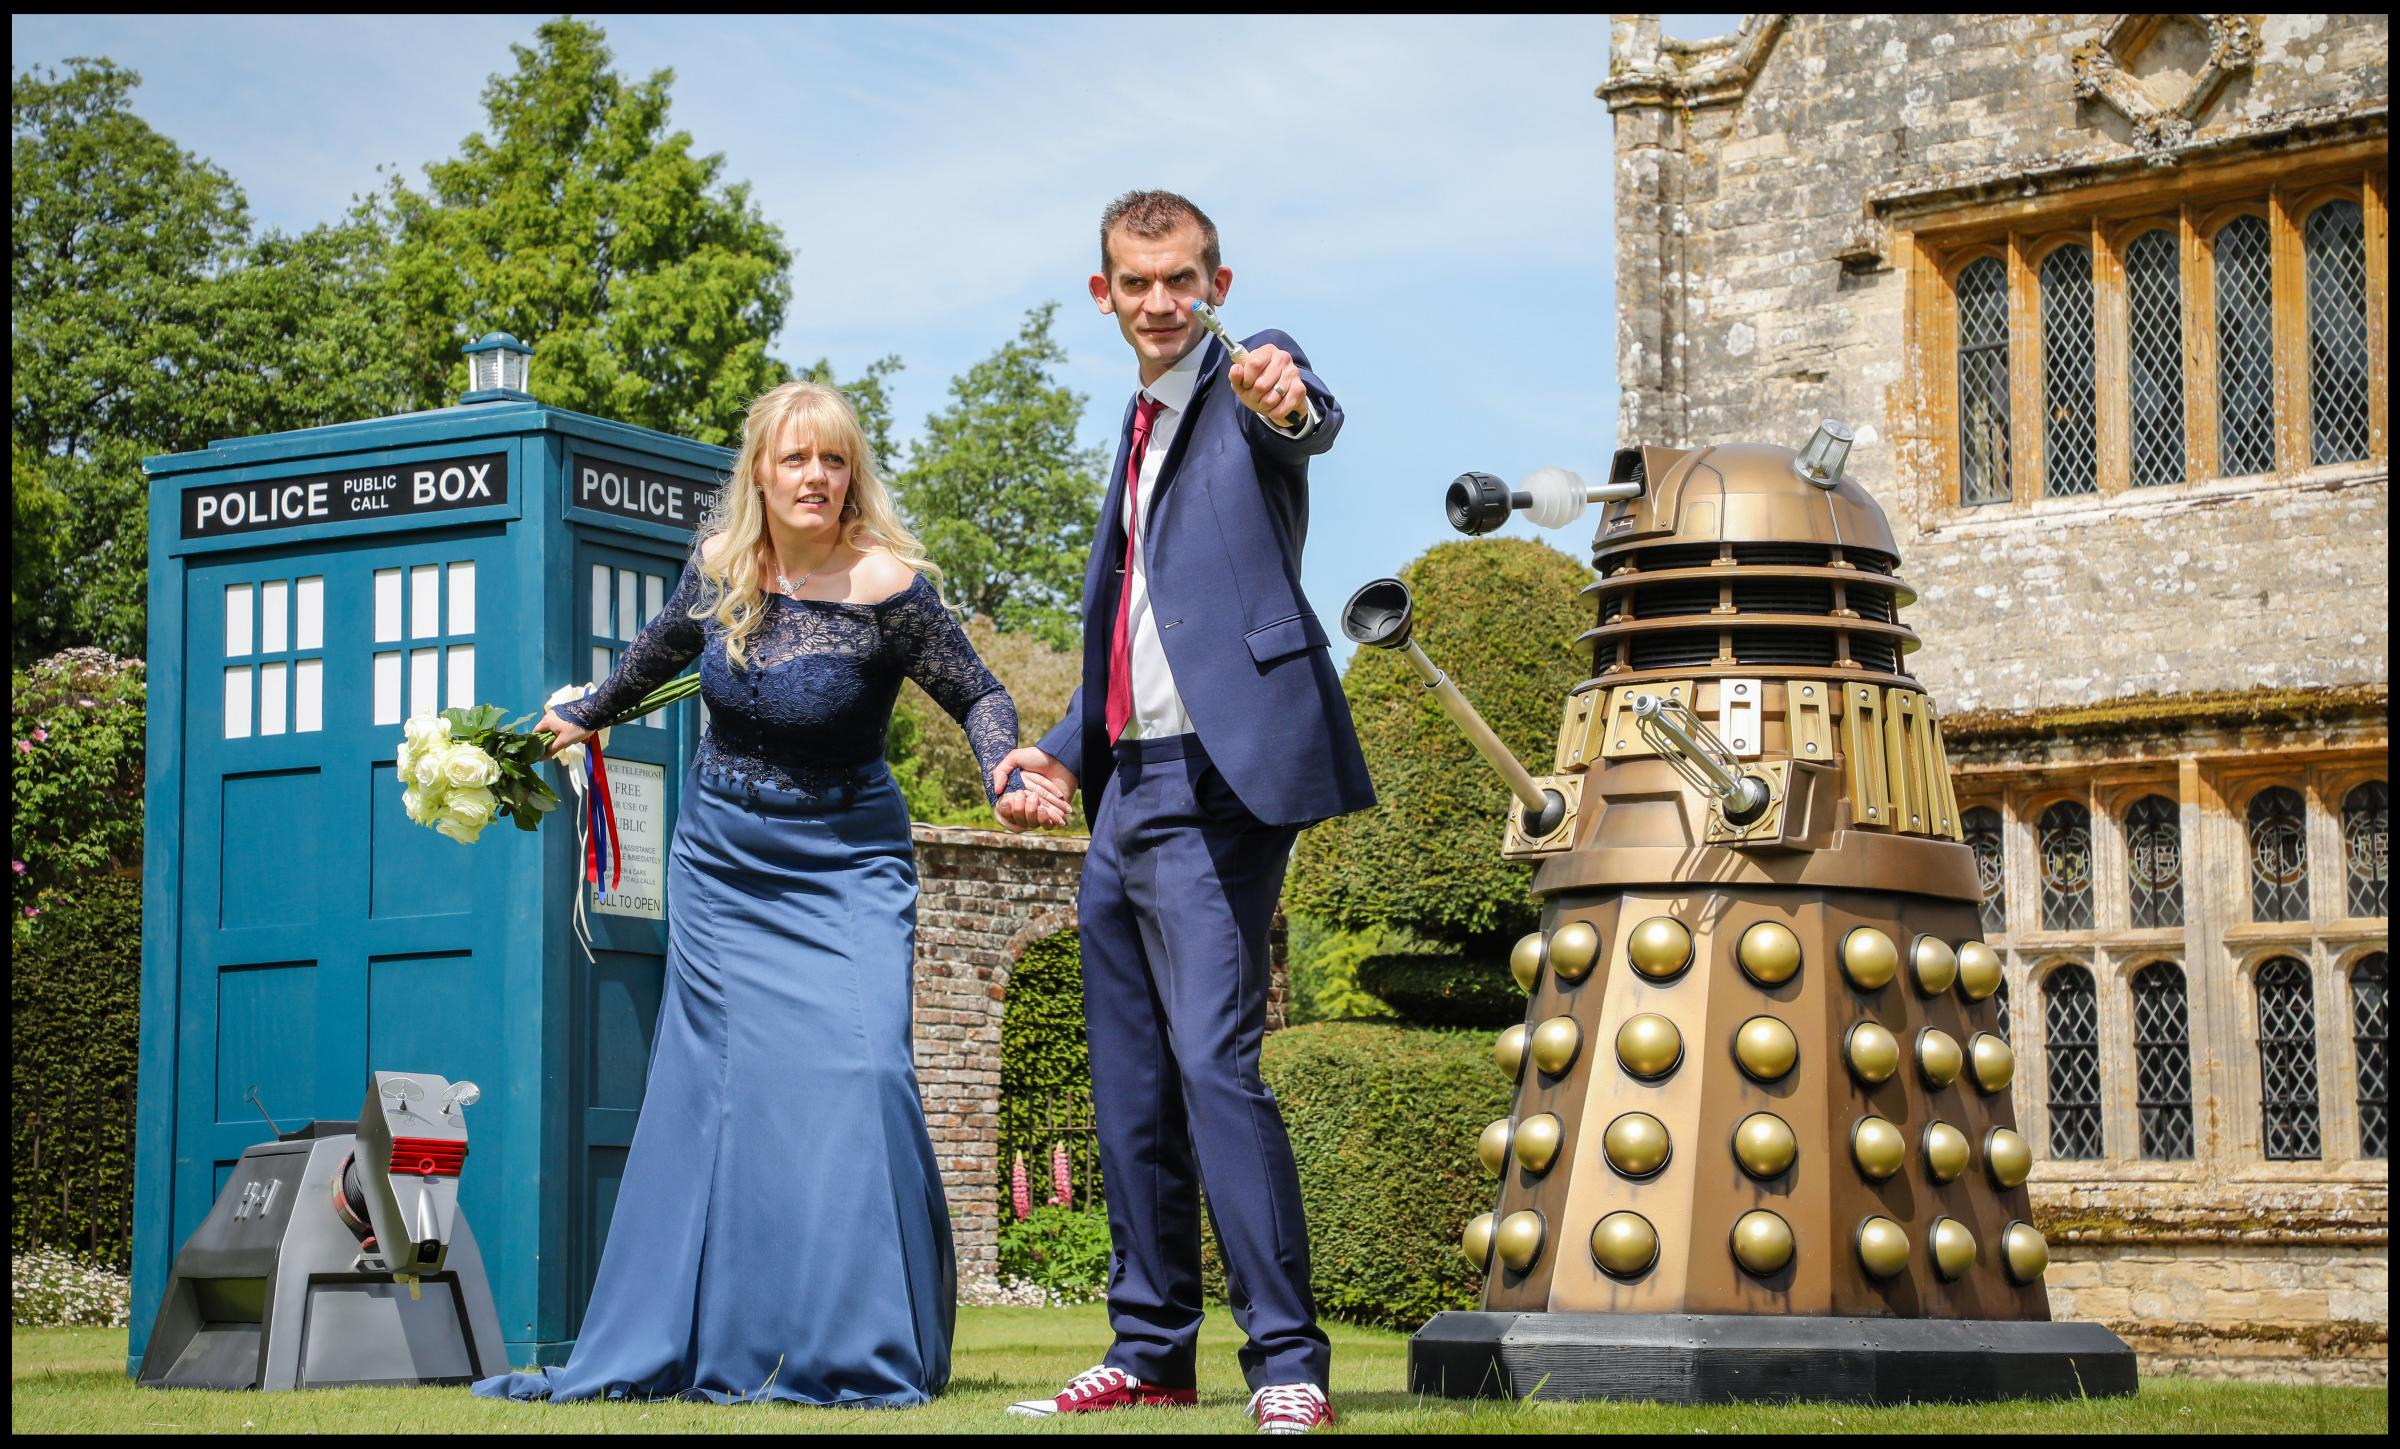 Dr-Who superfans tie the knot in blockbuster-themed wedding at Dorset manor